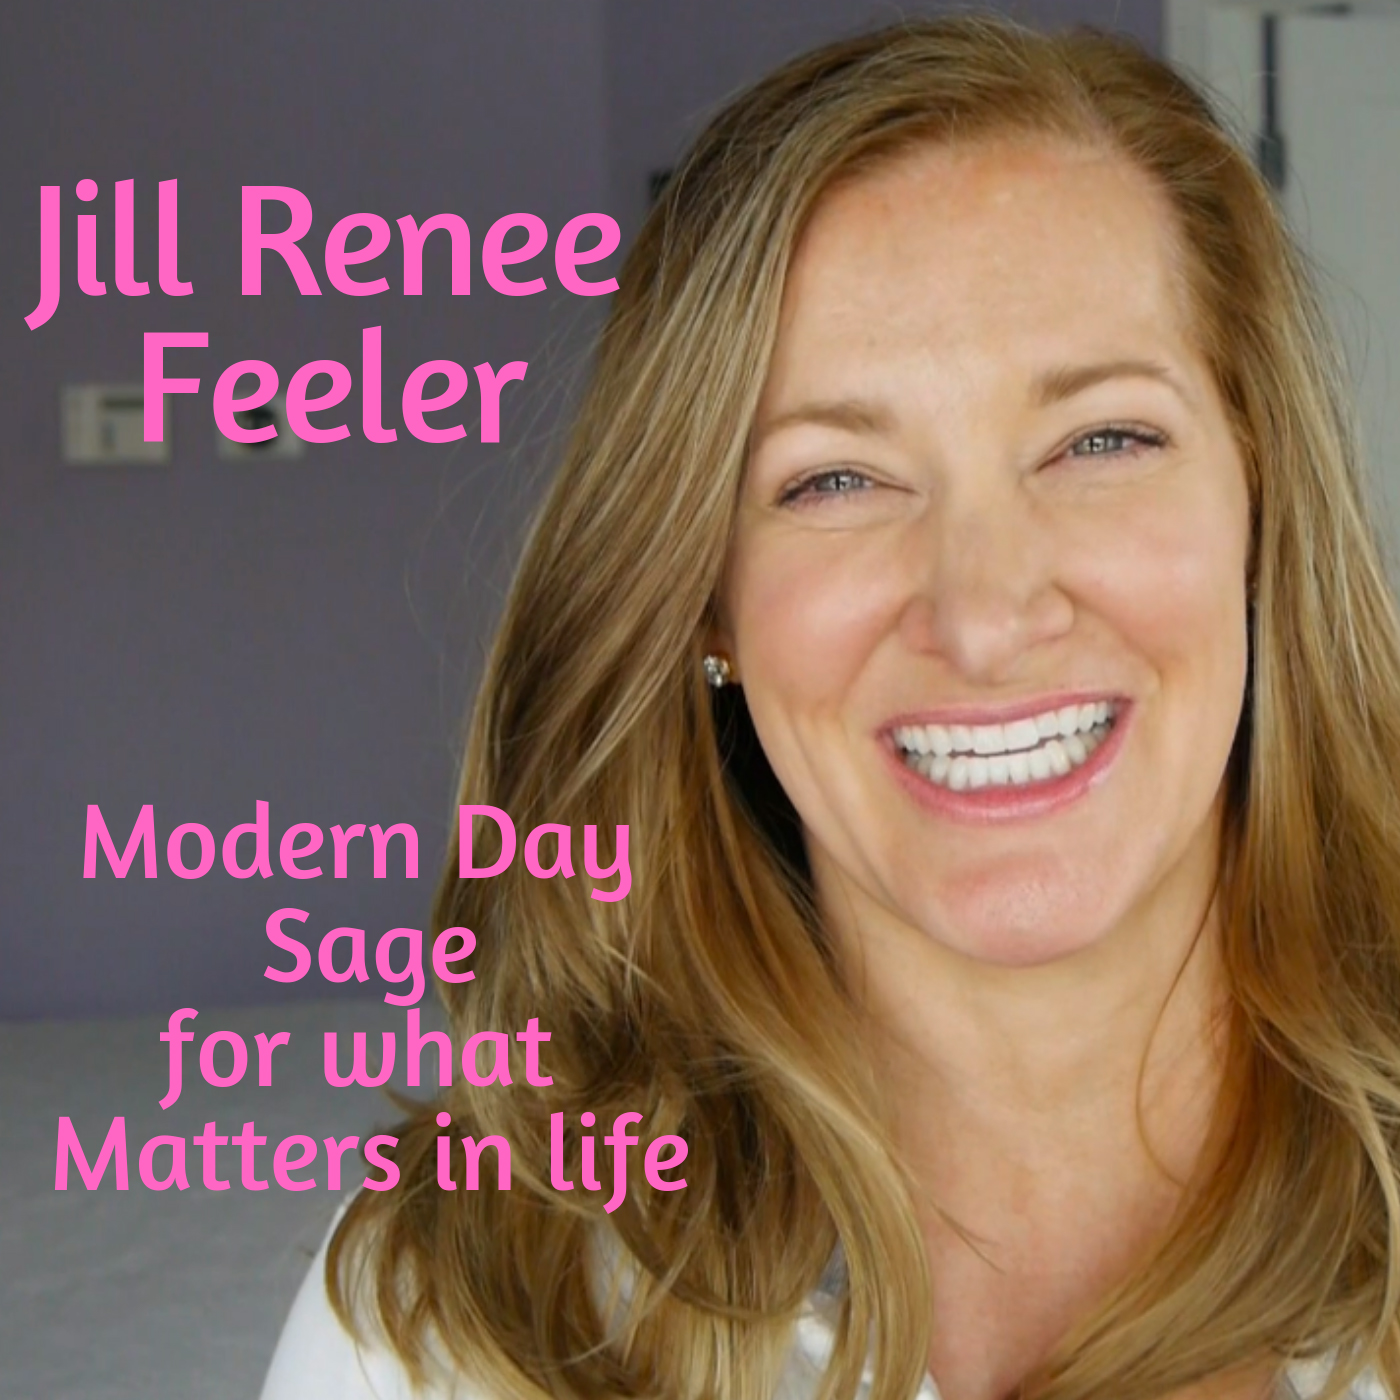 Jill Renee Feeler Gifted Videos Webinars